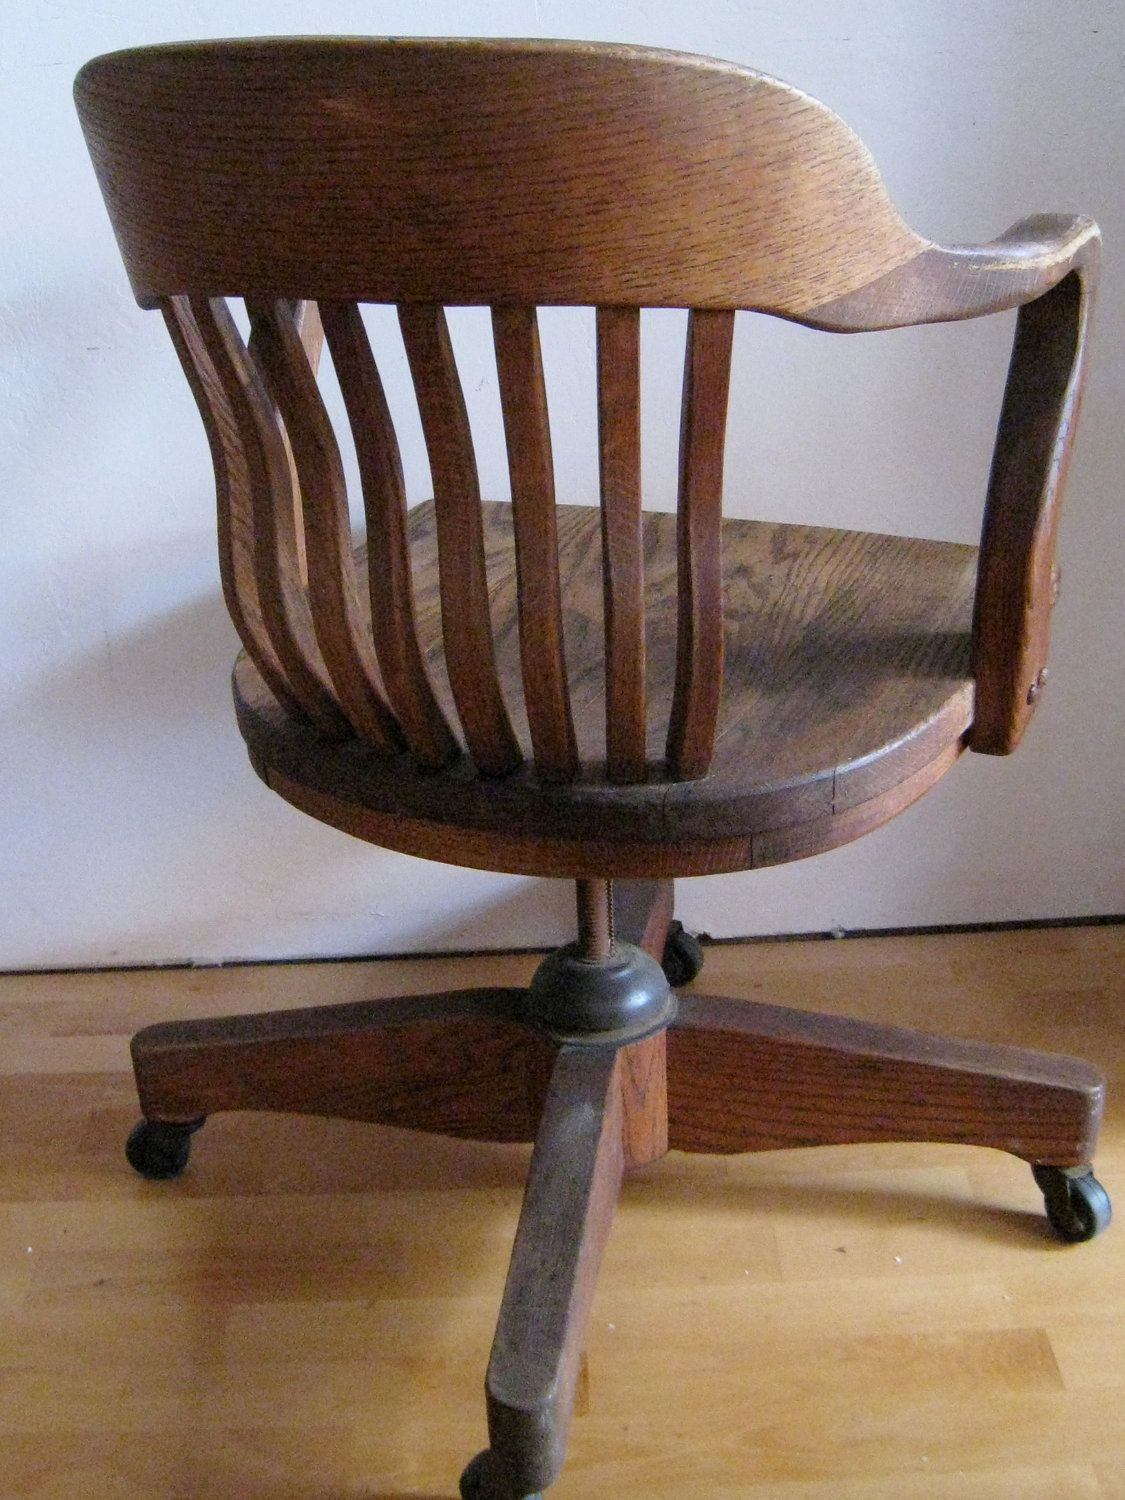 via office chairs. Via Office Chairs. Oak Desk Chair Art Deco Swivel Tilting Rolling Chair. $295.00 Chairs